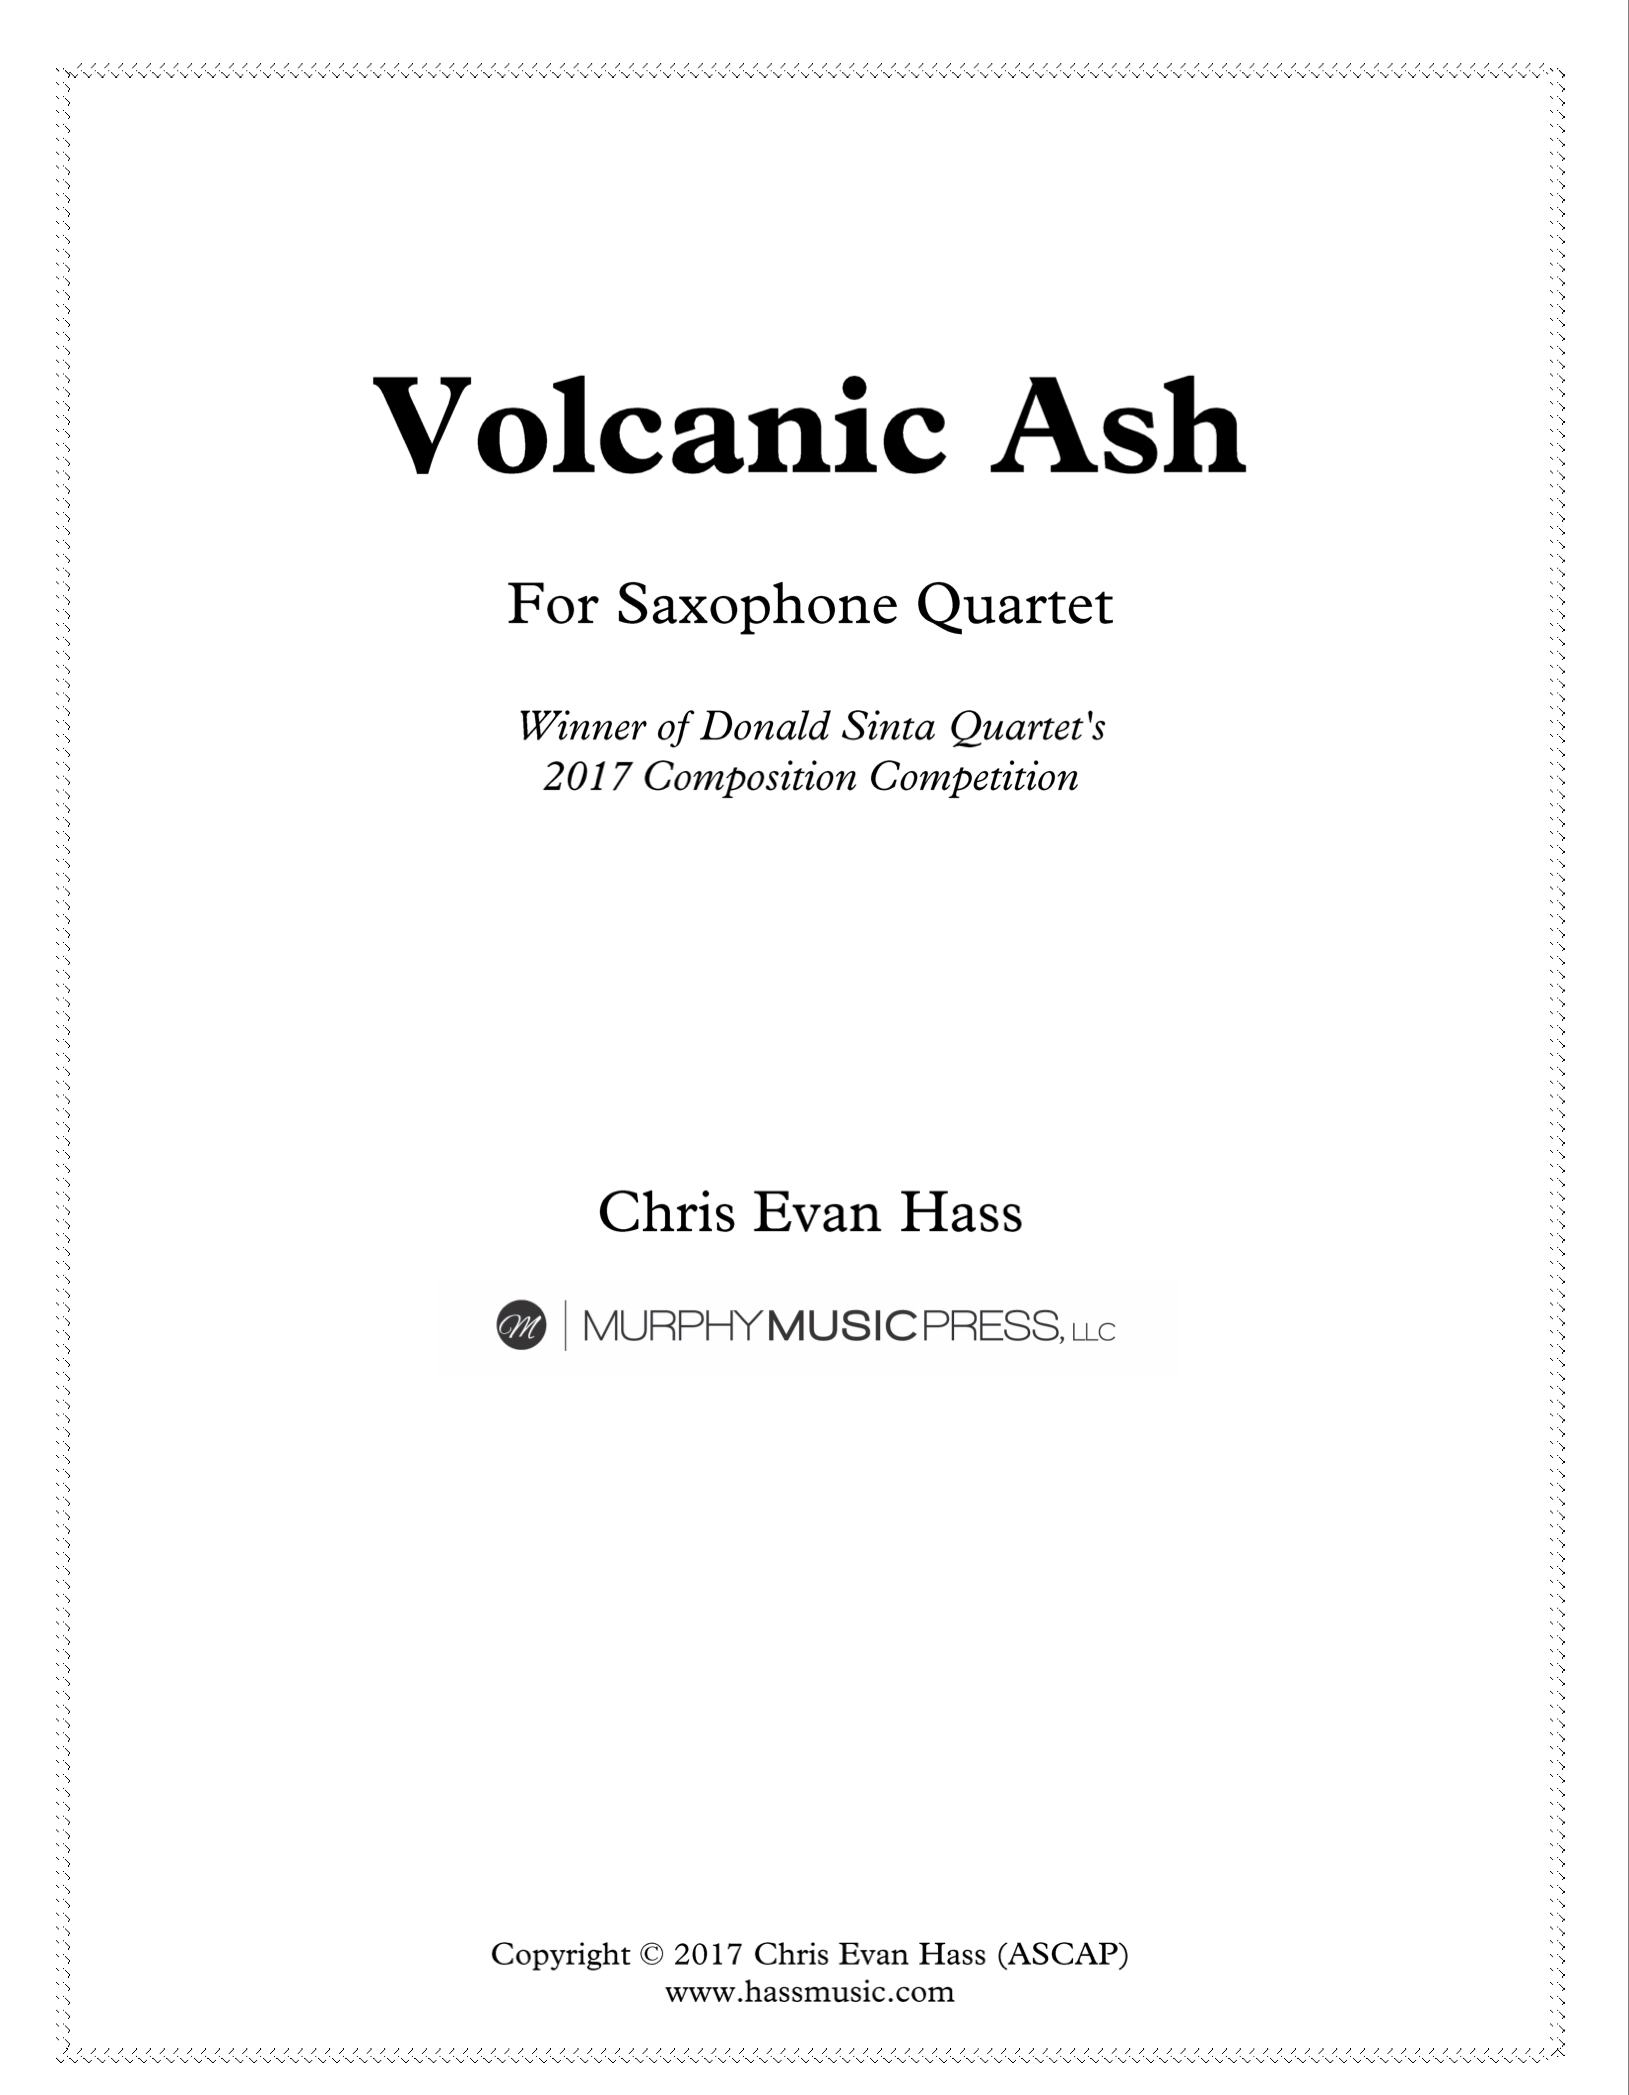 Volcanic Ash by Chris Hass